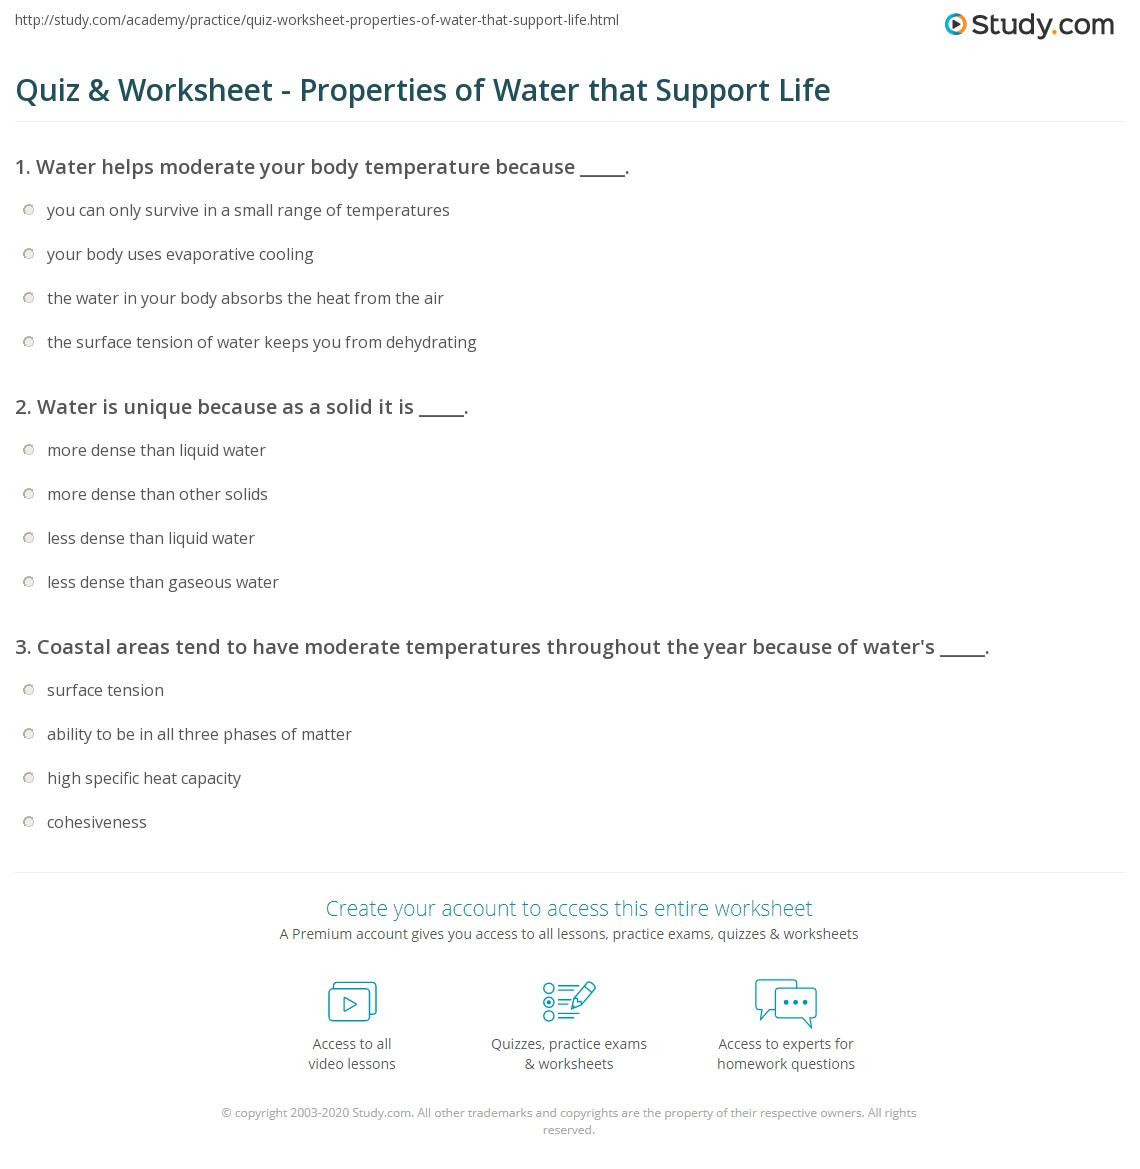 28 properties of water worksheet quiz amp worksheet properties of water that support life. Black Bedroom Furniture Sets. Home Design Ideas